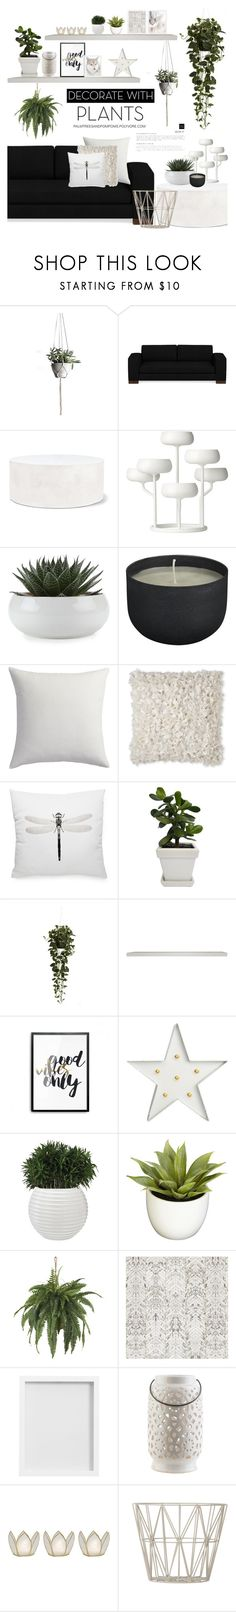 """""""Grow a Little: Planters"""" by palmtreesandpompoms ❤ liked on Polyvore featuring interior, interiors, interior design, home, home decor, interior decorating, Williams-Sonoma, Seasonal Living, iittala and CB2"""